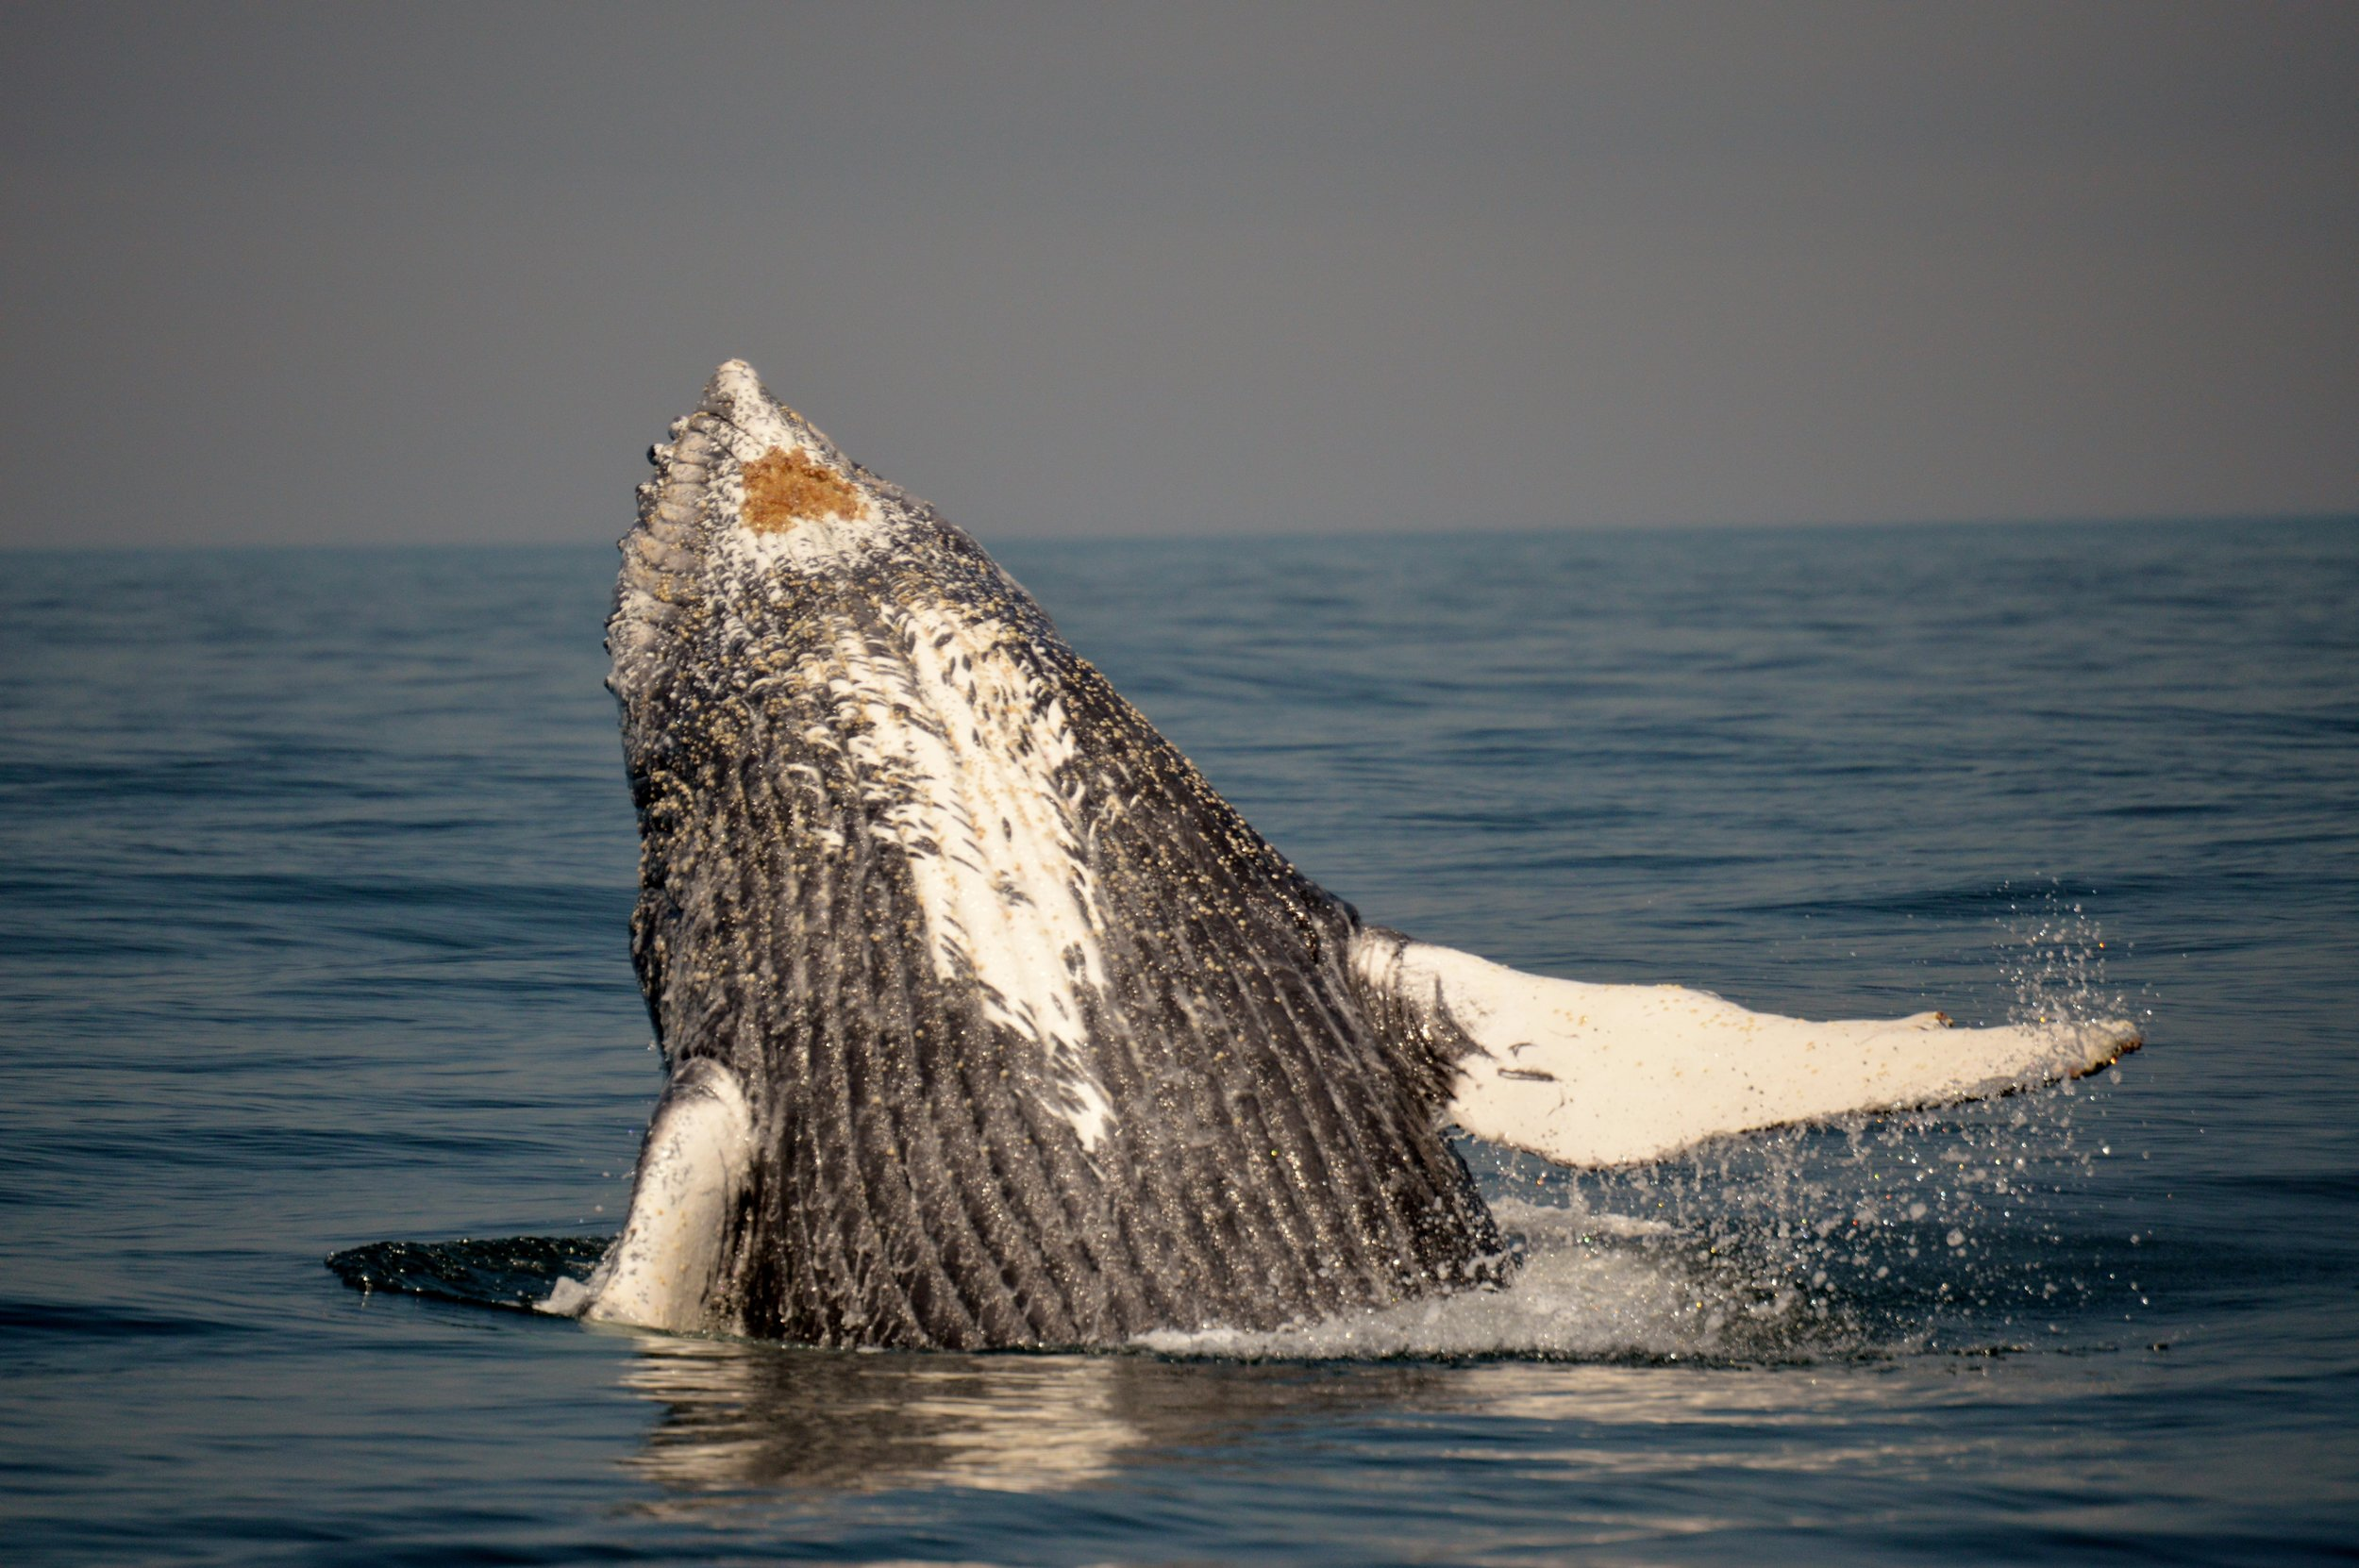 Humpback whale breach in Plettenberg Bay. Photo: Sally Sivewright